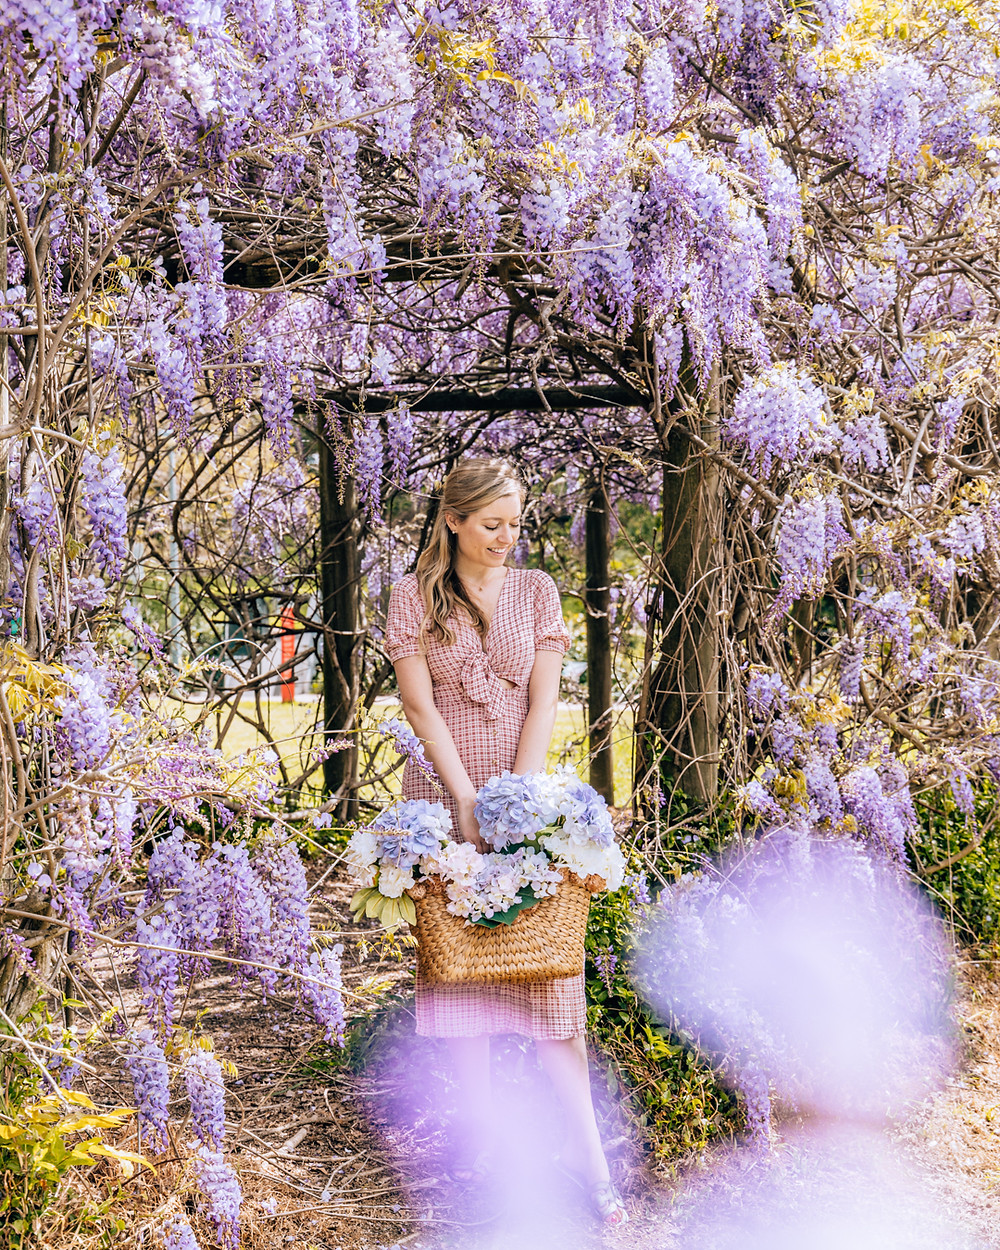 Wisteria at Muston Park. A beautiful display of spring flowers in Sydney, Australia